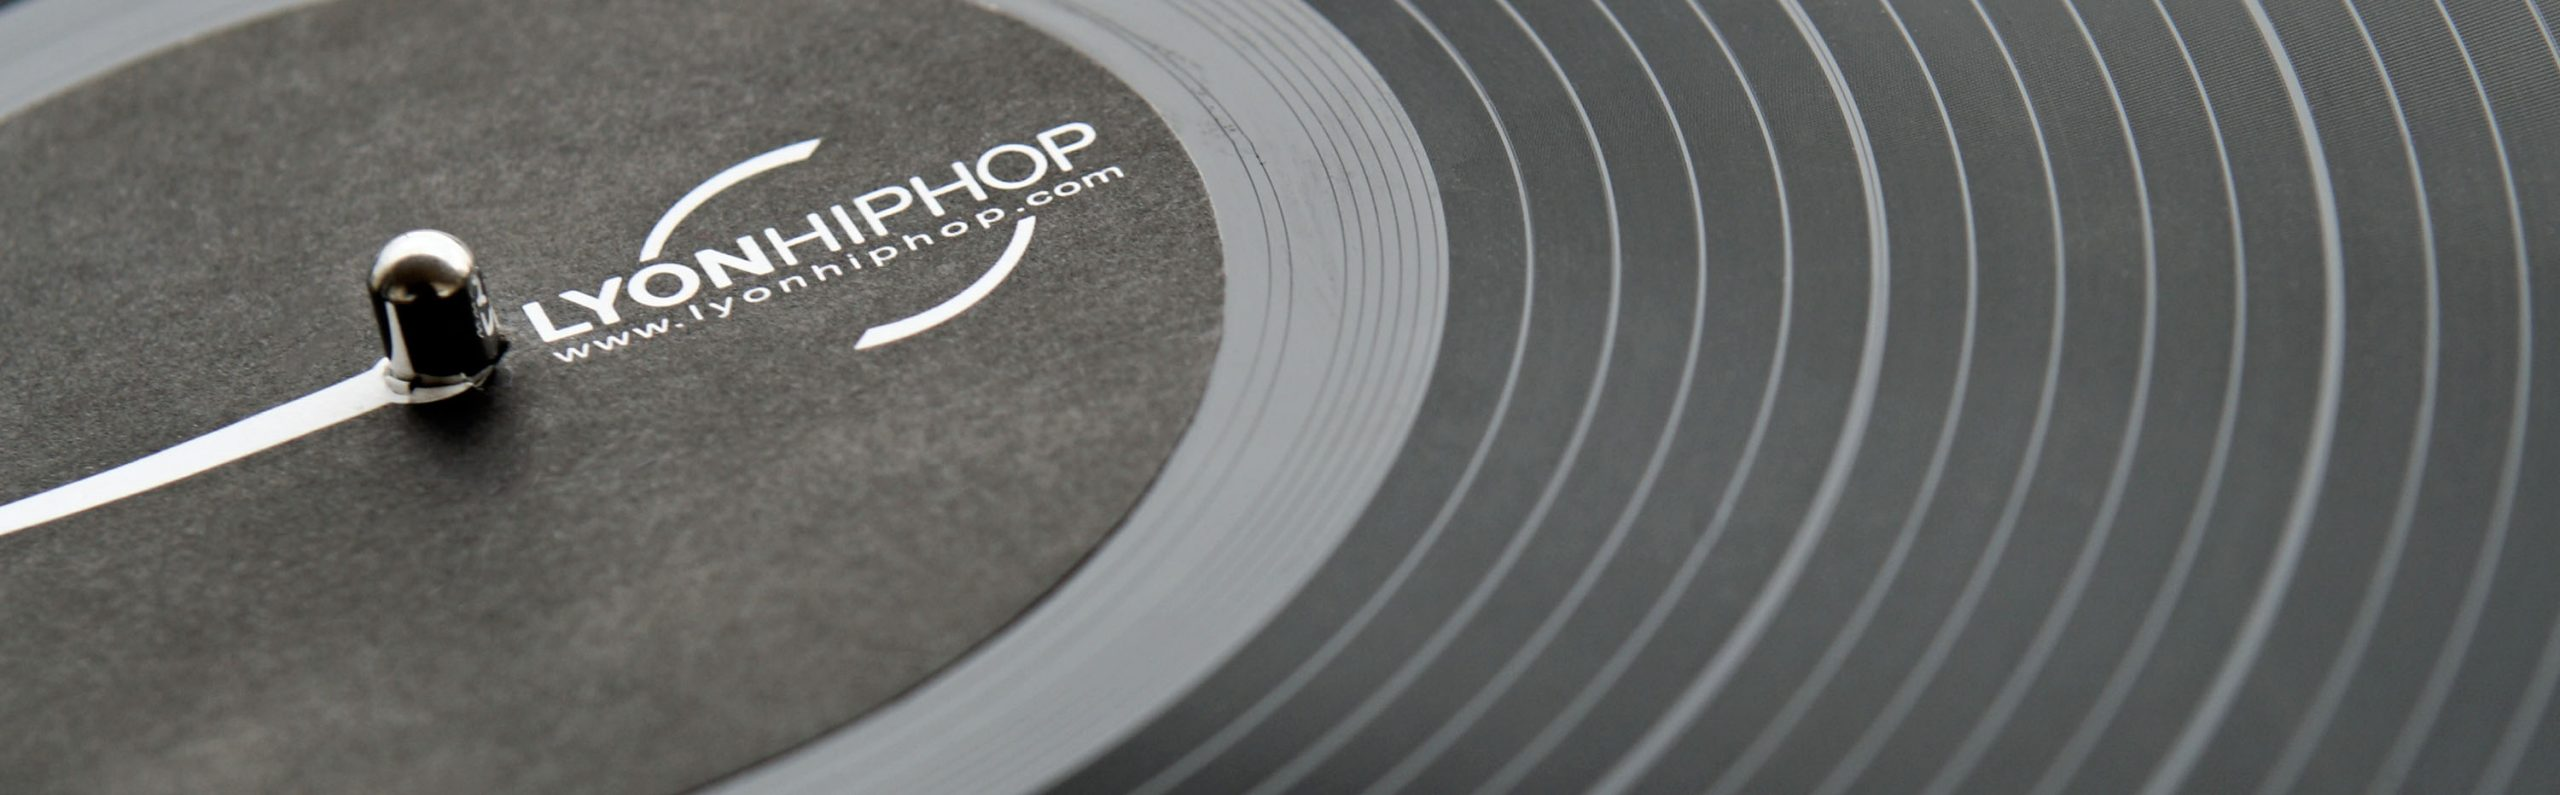 LHH-Vinyl-Contact-Page